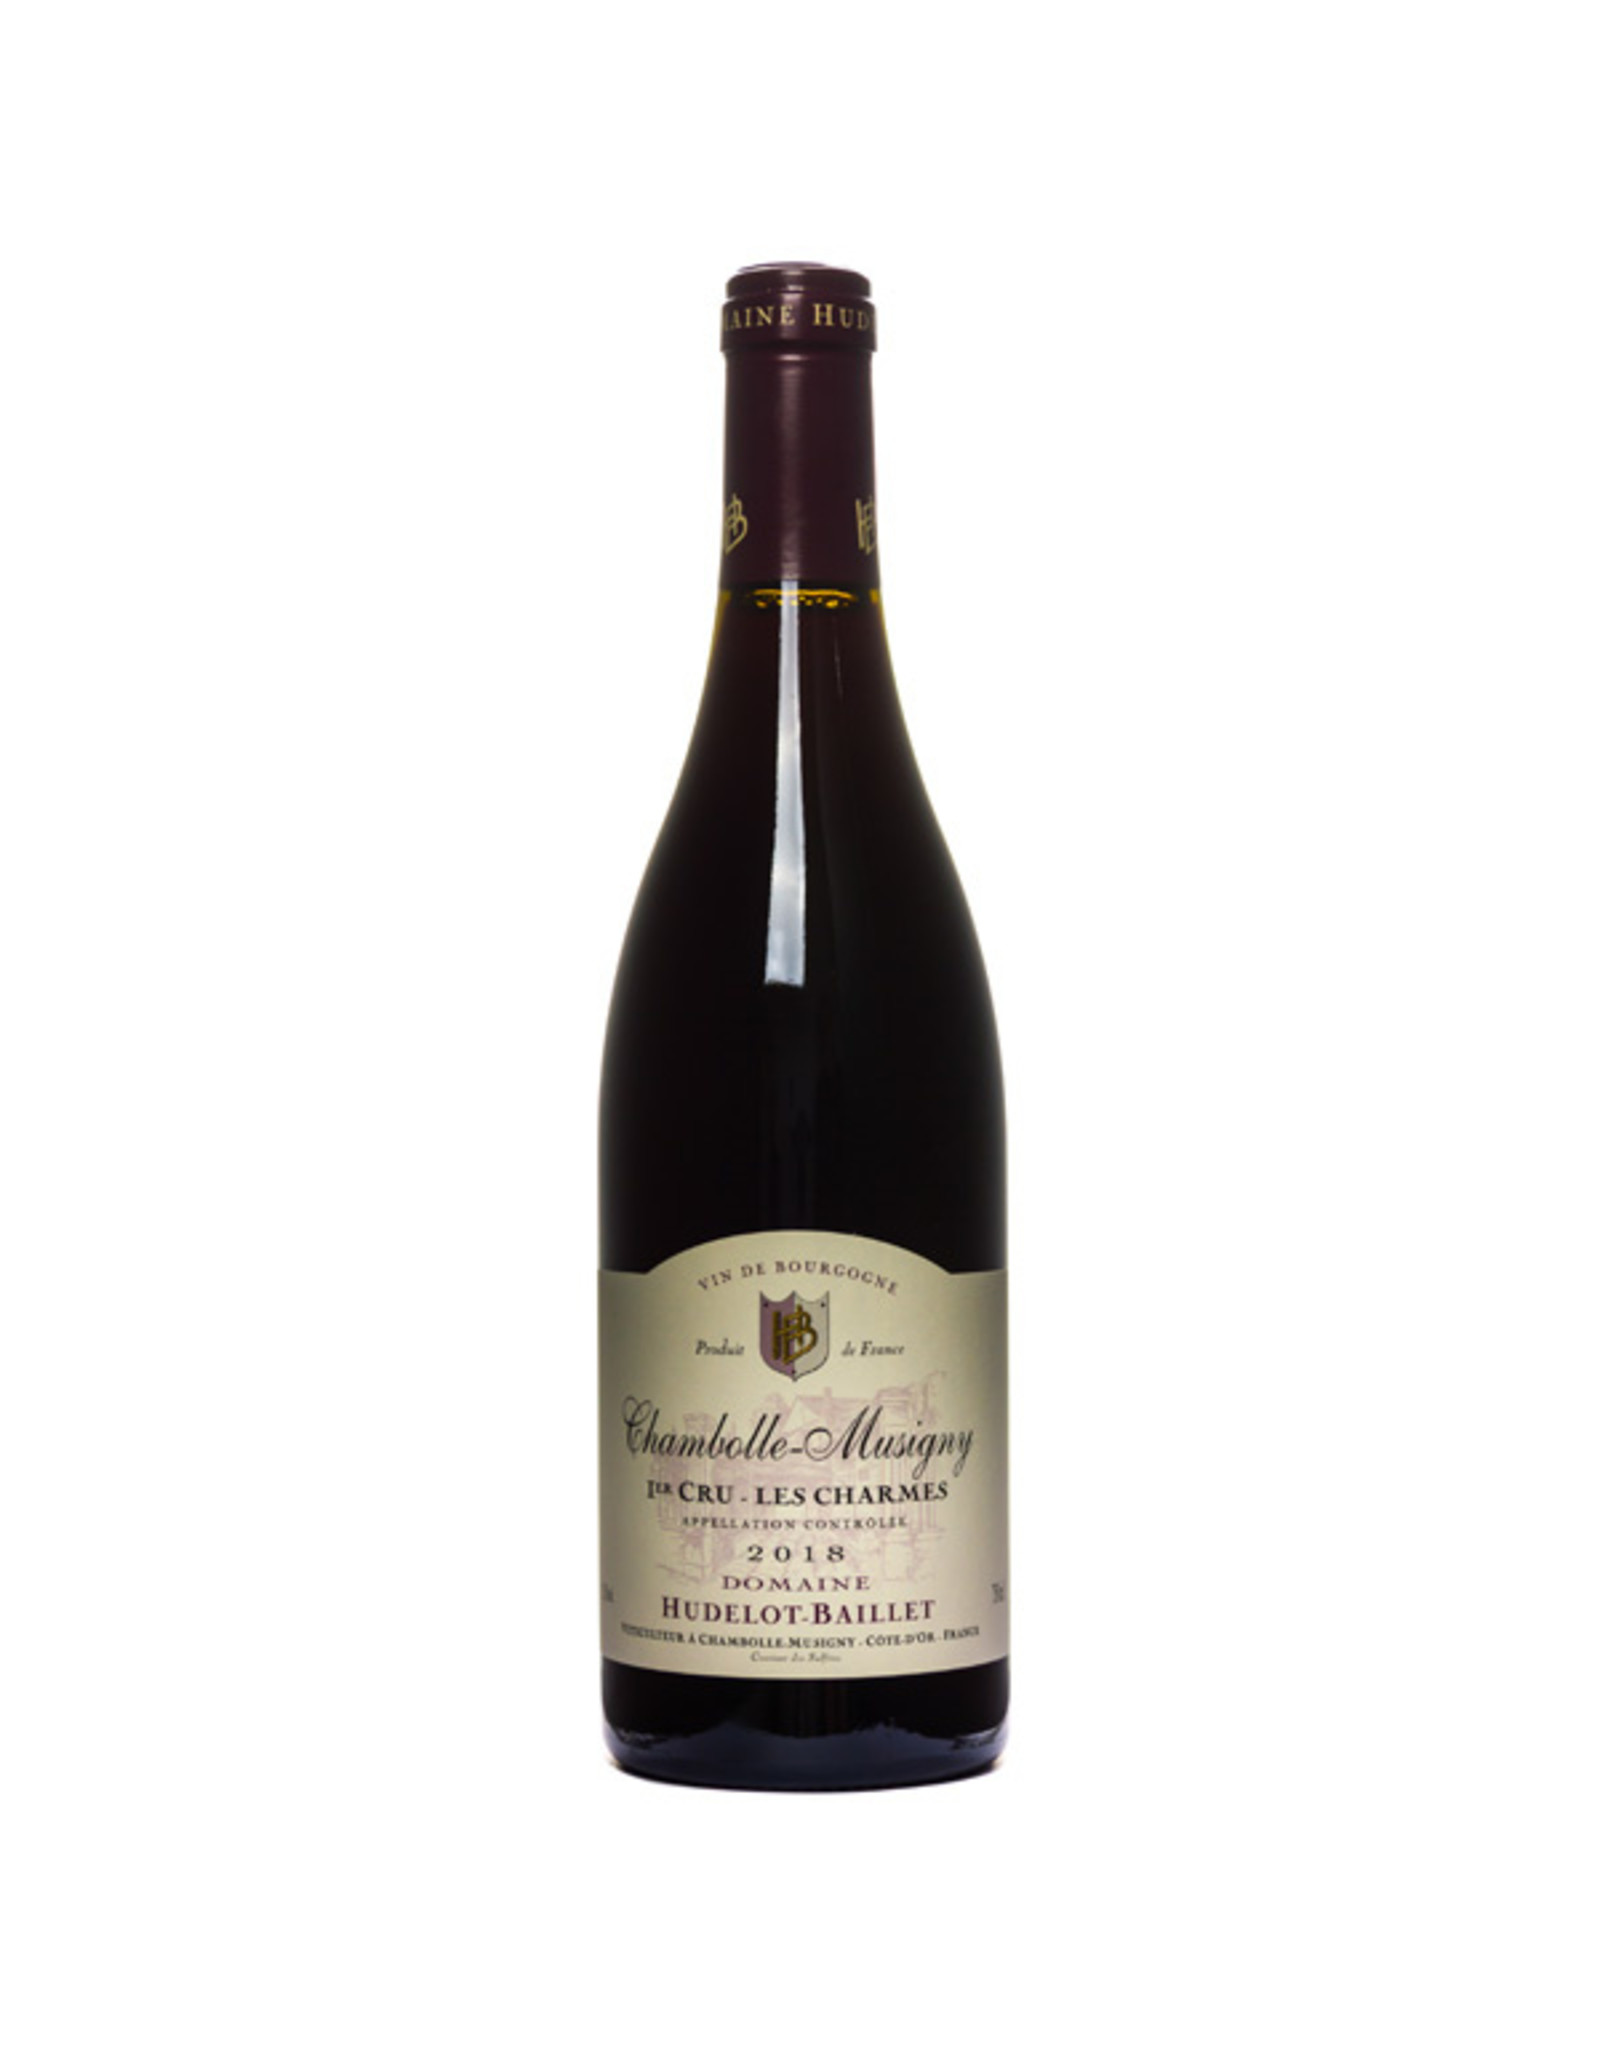 """Hudelot-Baillet, Chambolle-Musigny """"Les Cras"""" Chambolle-Musigny 1er Cru, Hudelot-Baillet"""